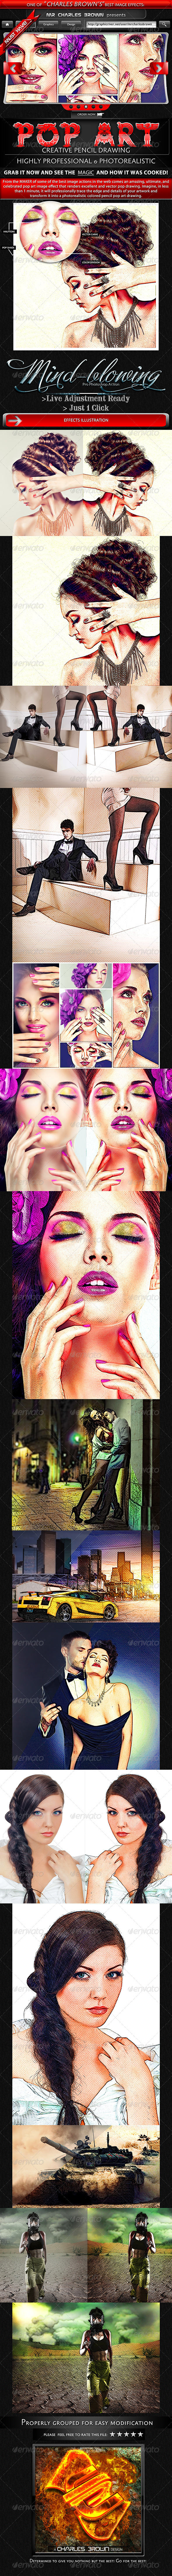 Creative Pop Art Pencil Drawing - Photo Effects Actions